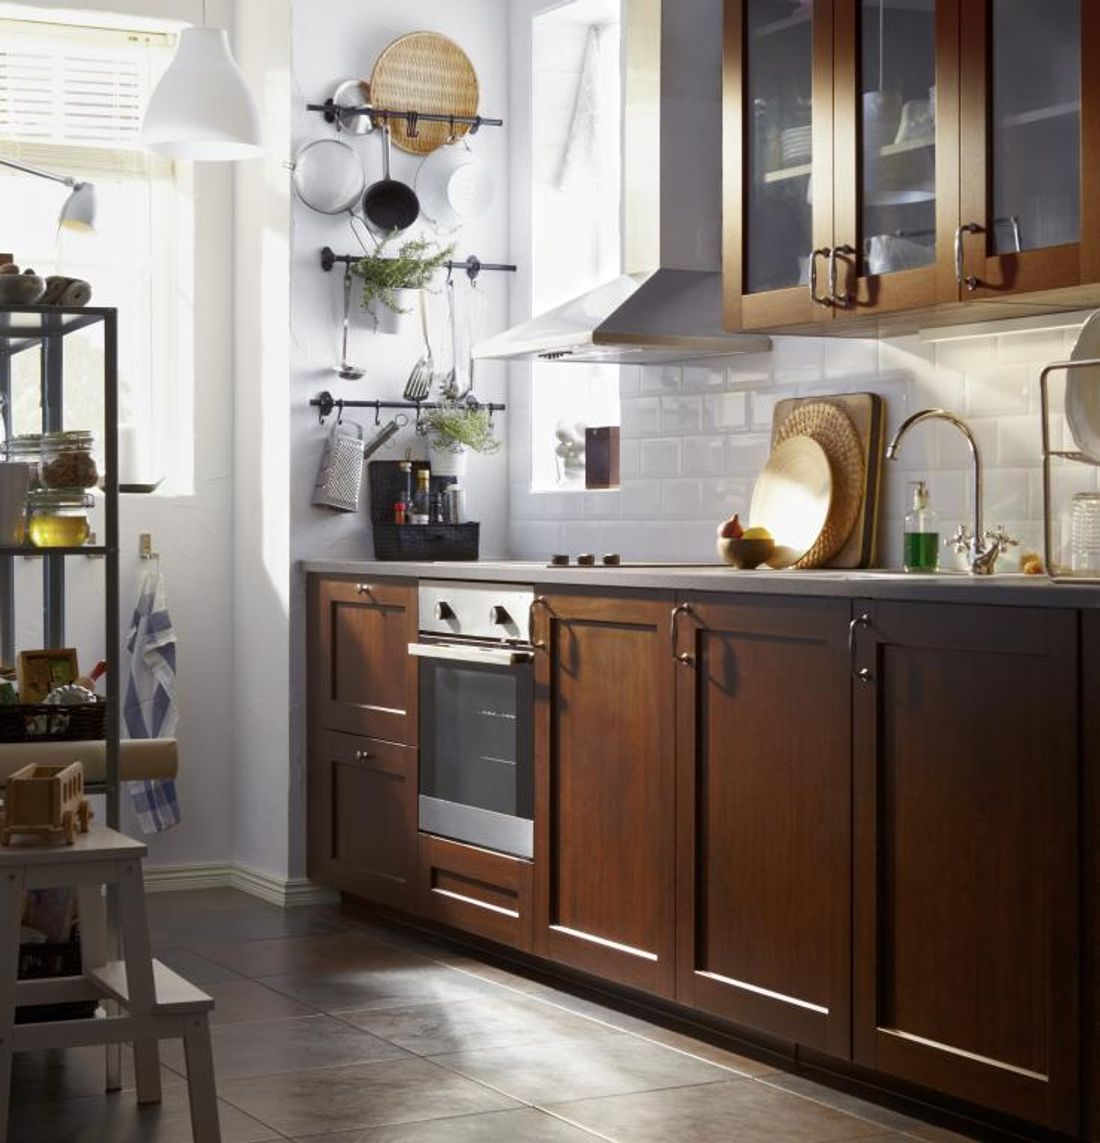 Kitchen Cabinets Cost: 2019 How Much Do Kitchen Cabinet Makers Cost?